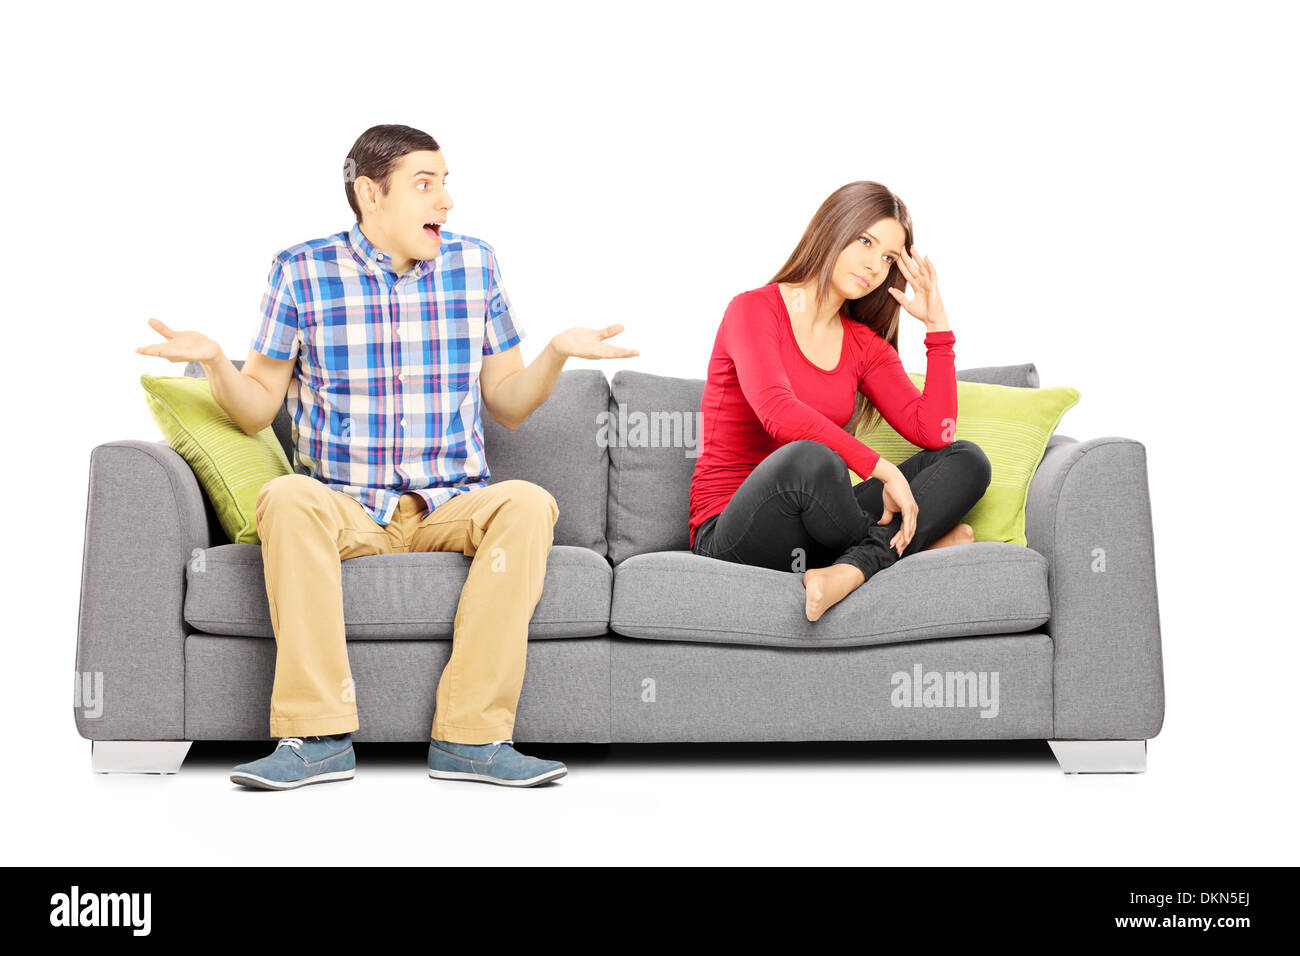 Young heterosexual couple sitting on a couch during an argument - Stock Image